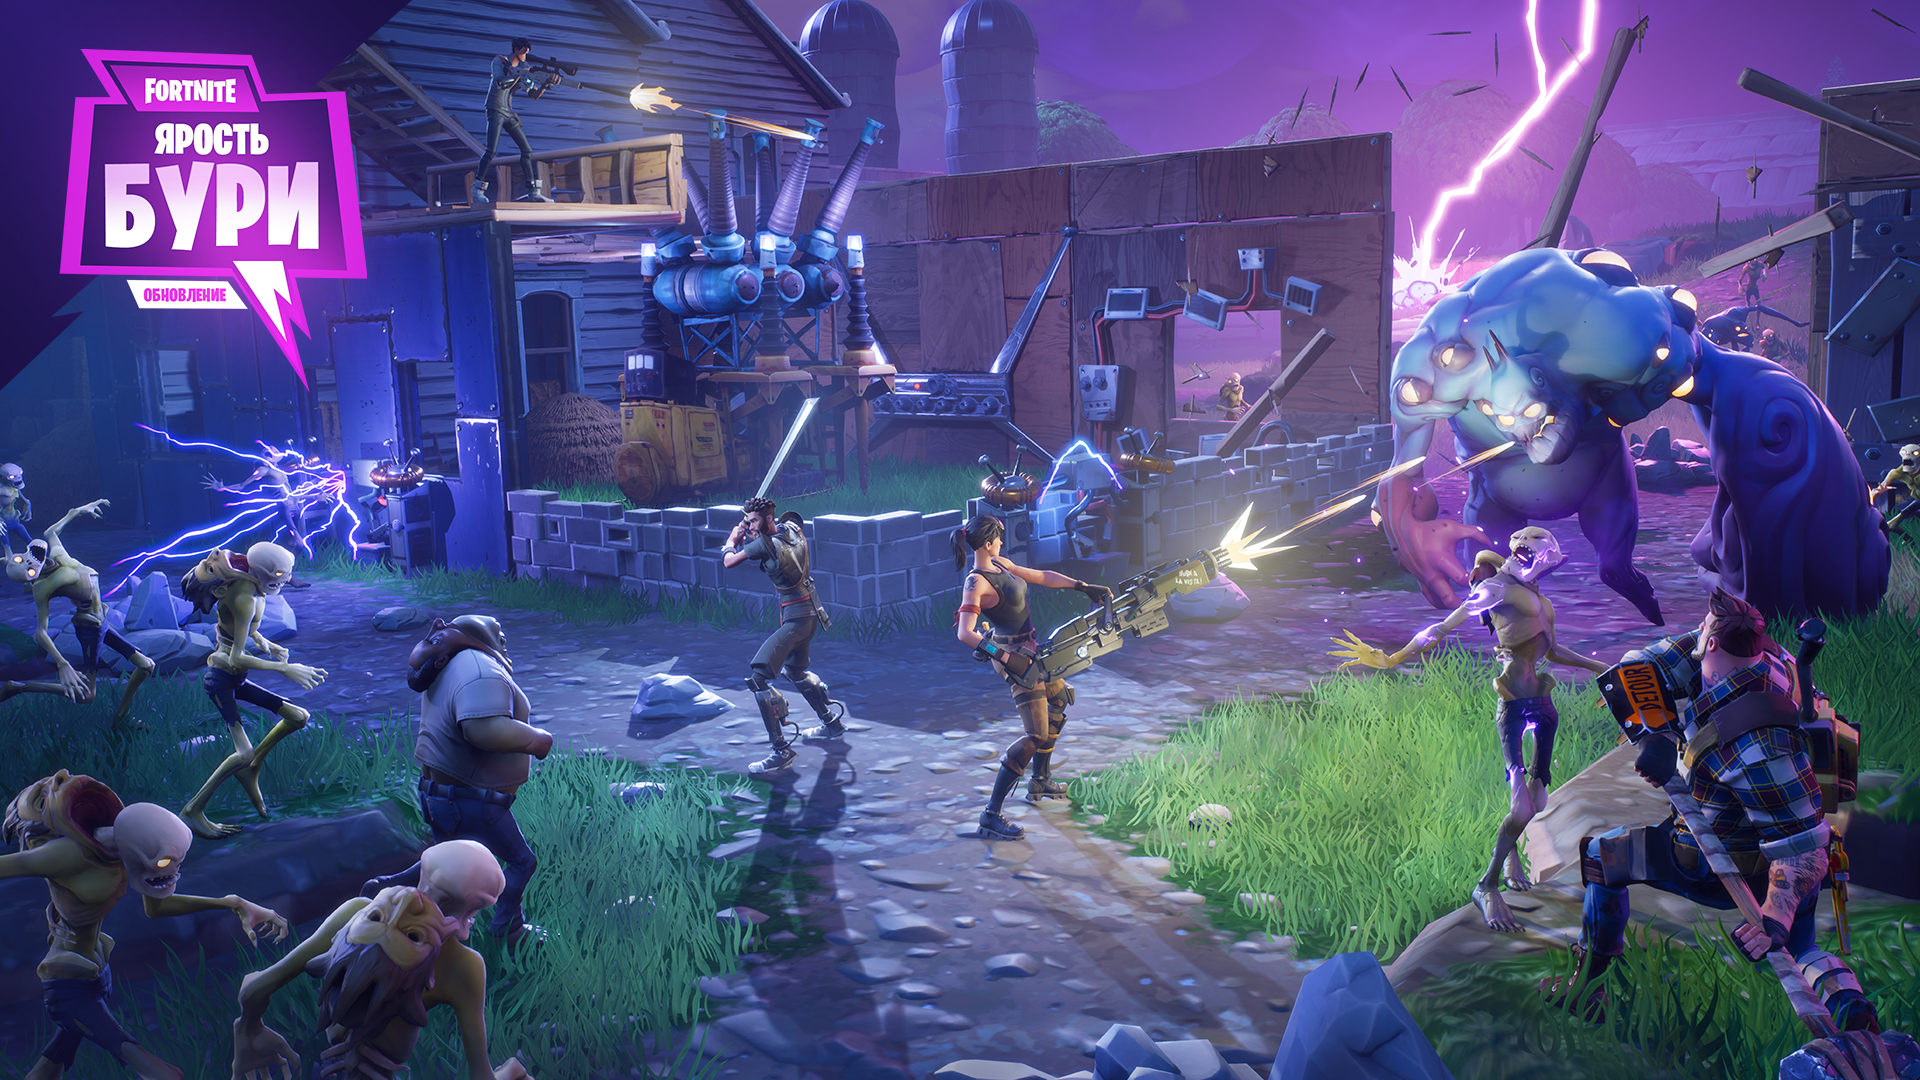 Fortnite%2Fblog%2Fsurvive-the-storm---release-notes%2FRUS_Survivor-Mode-Gameplay-1920x1080-7d5a39dc46b186564ca57df2808fc6a0a99a6b4a